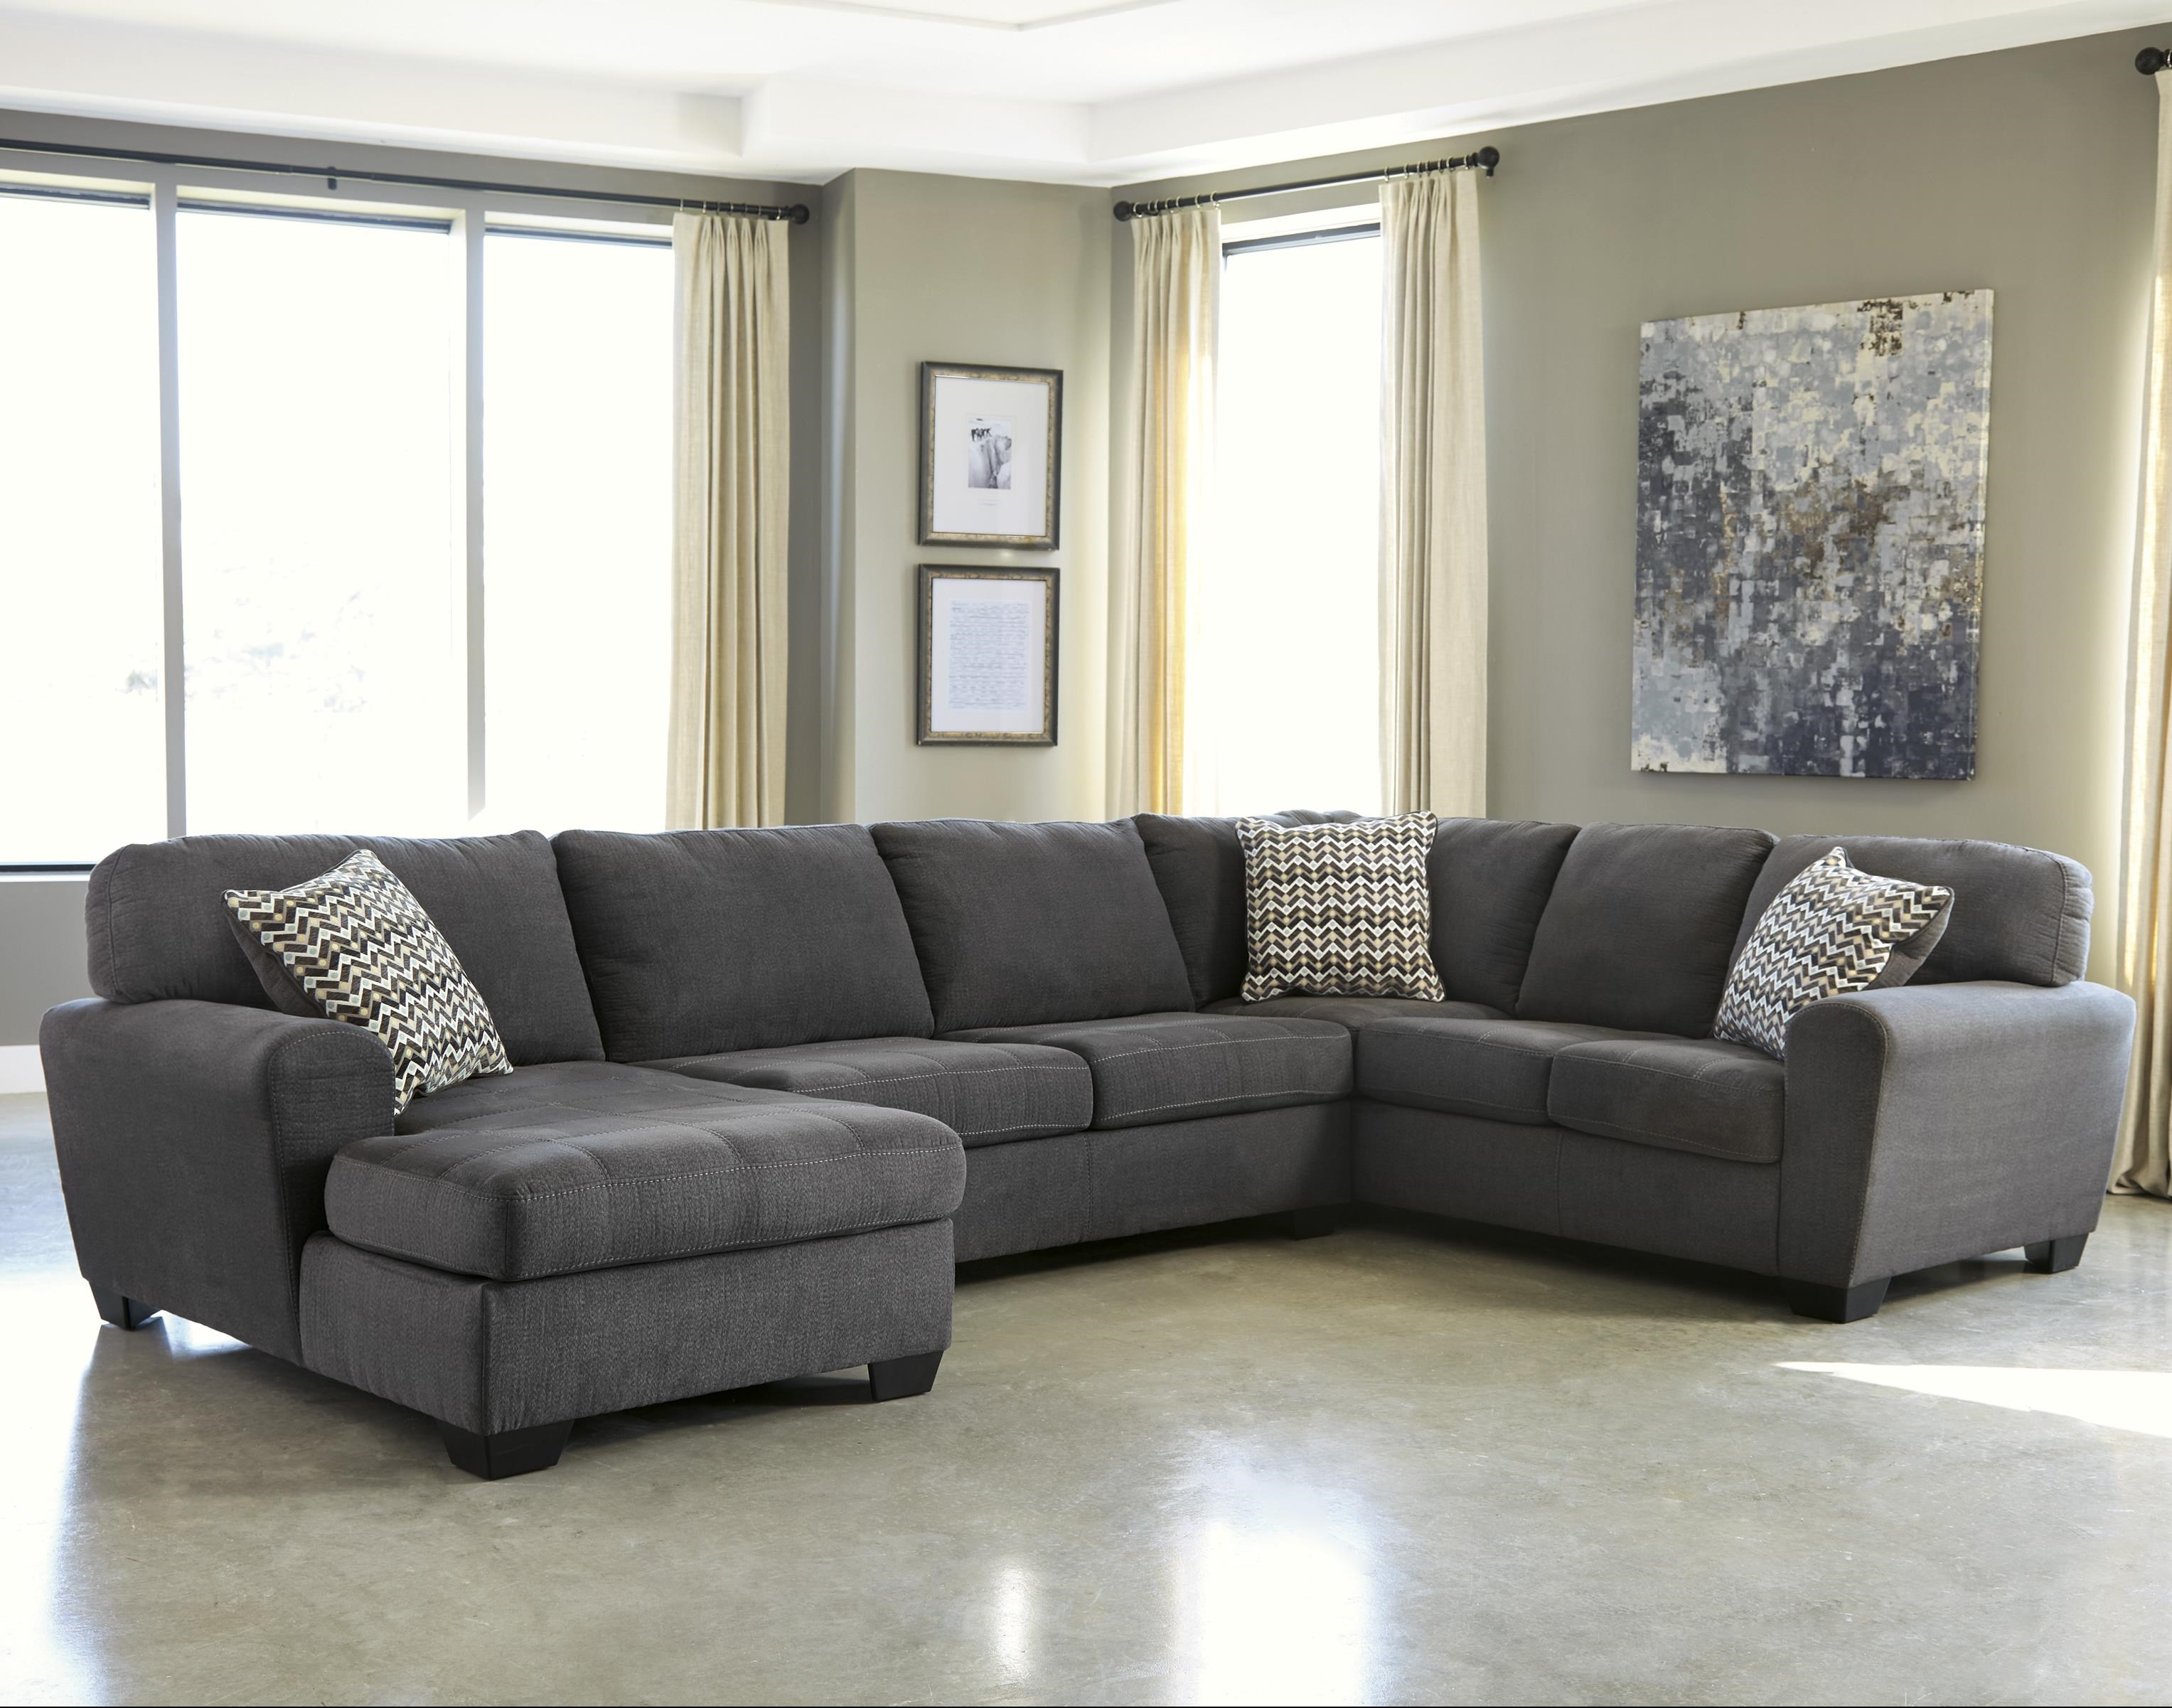 Benchcraft By Ashley Sorenton Contemporary 3 Piece Sectional With Left Chaise Royal Furniture Sectional Sofas